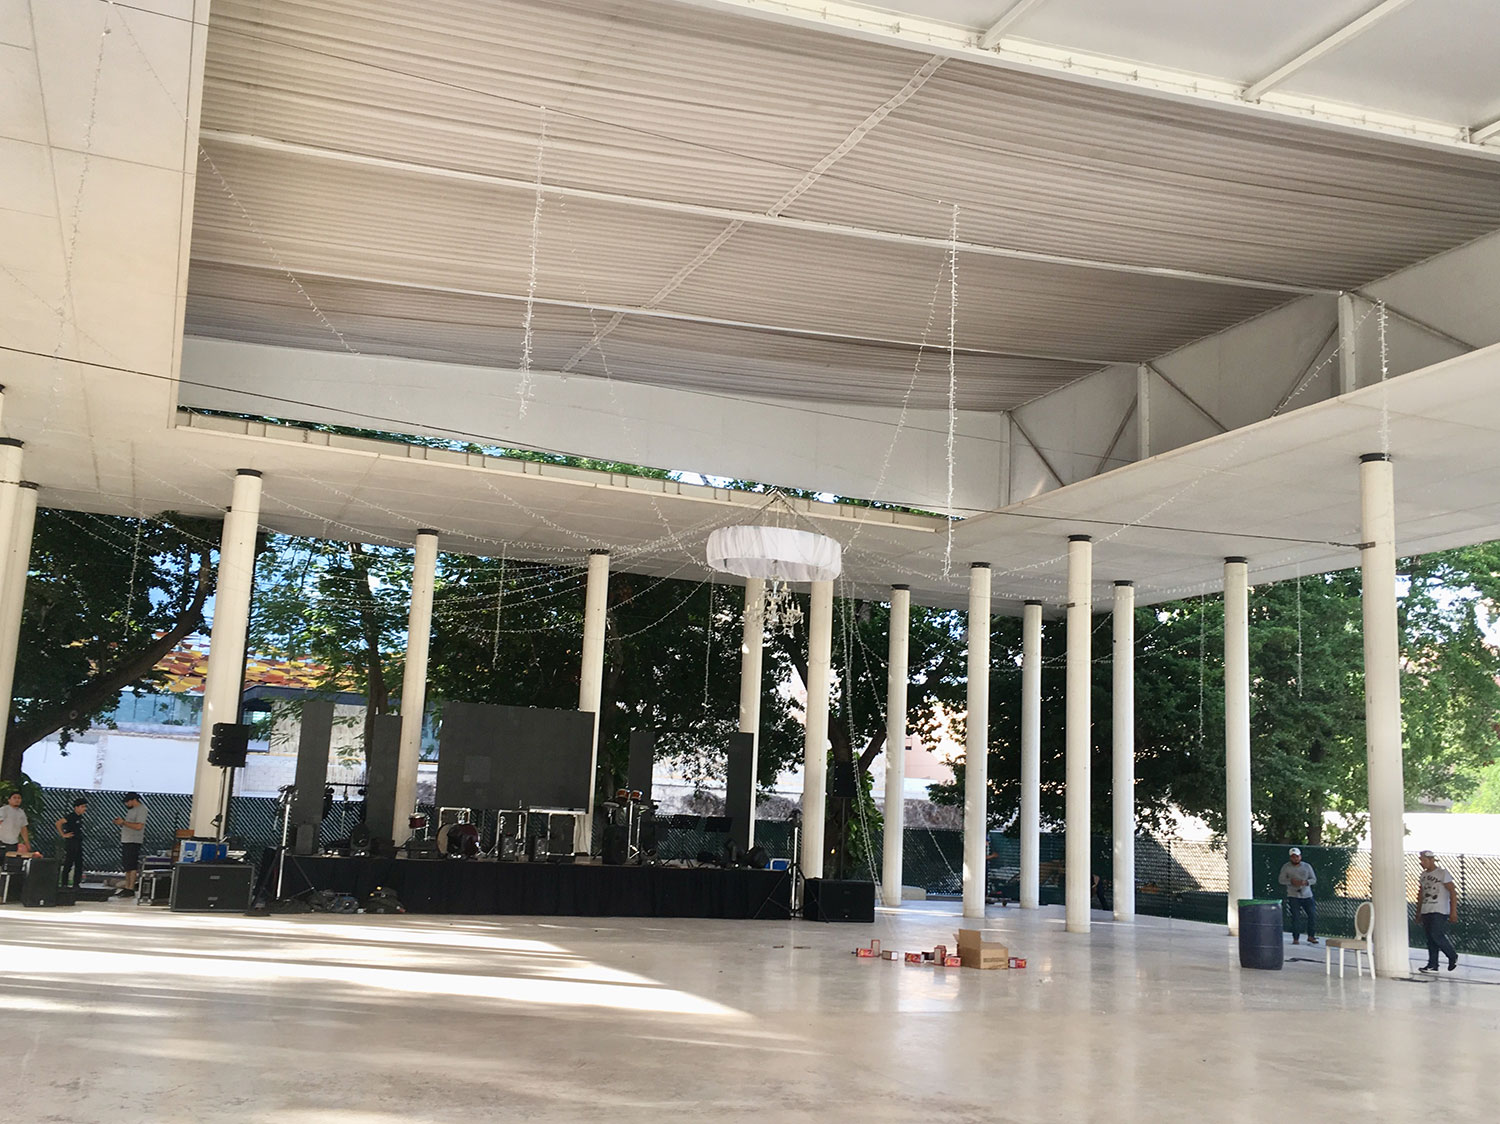 The event space for concerts and conferences in the back garden.